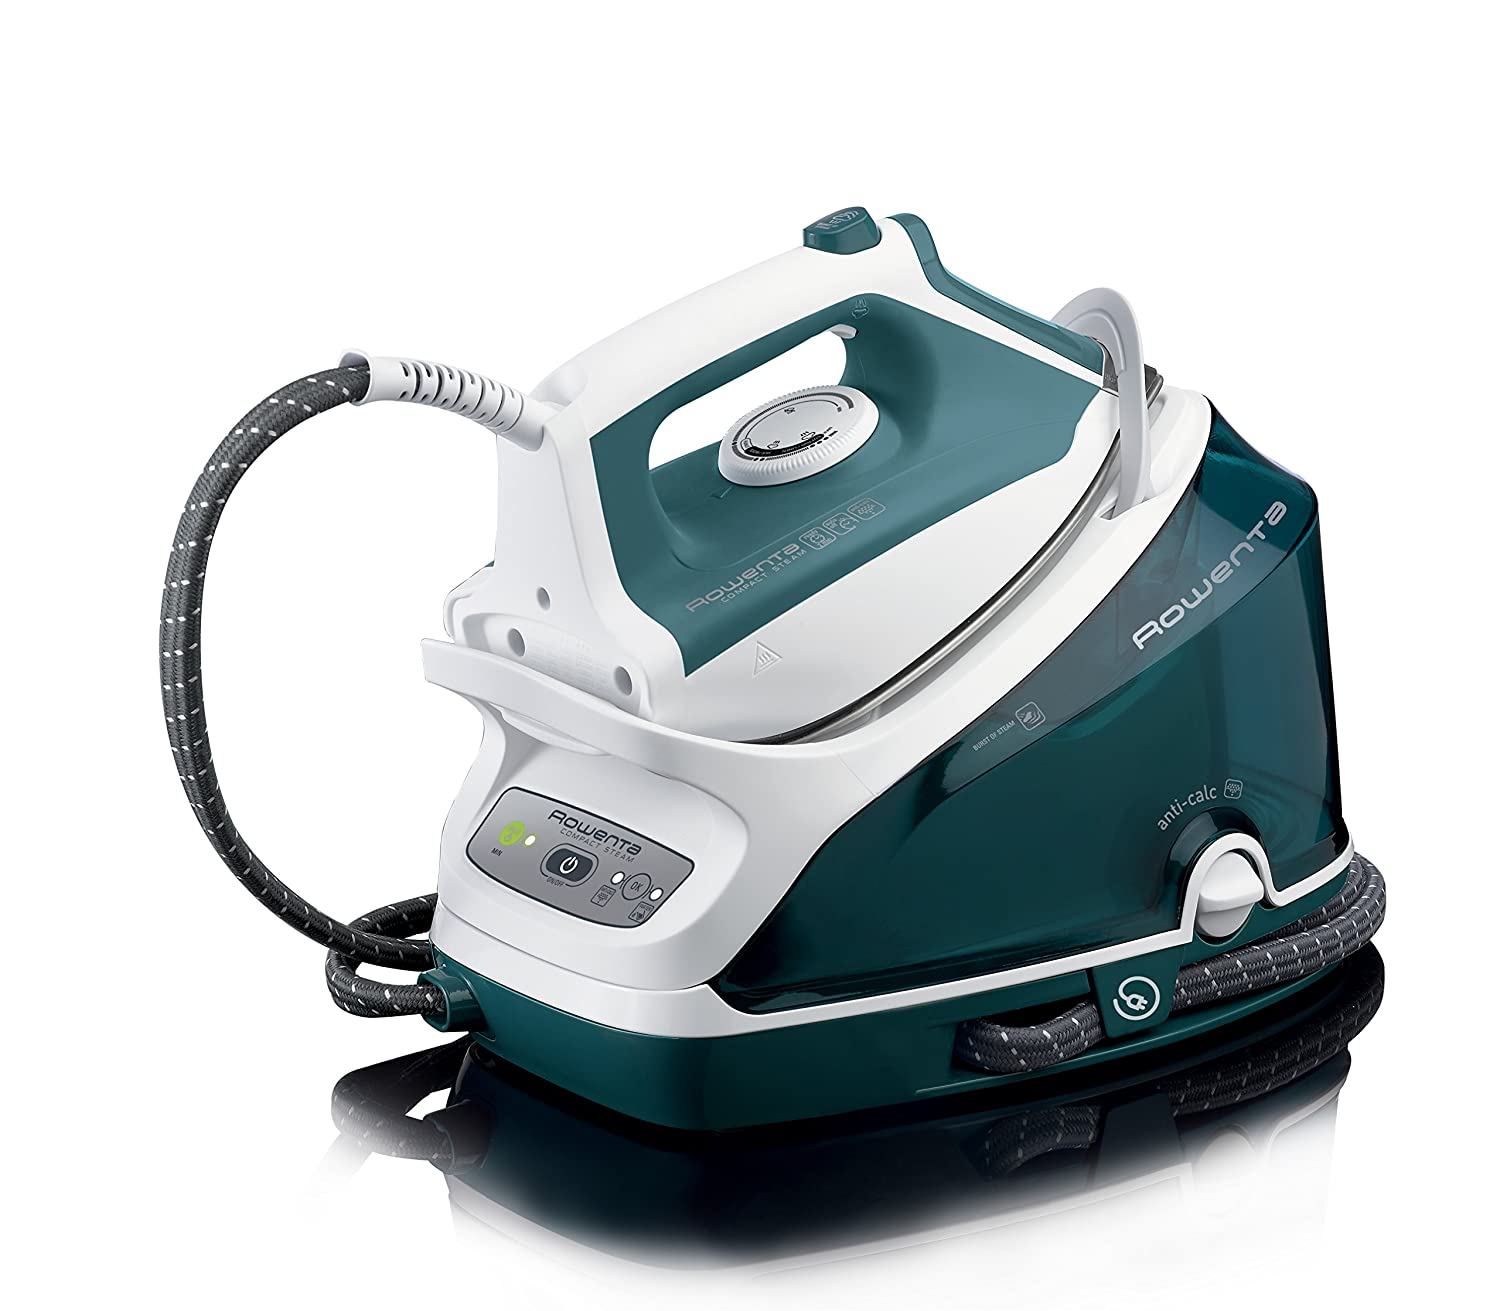 Cleaning rowenta pressure iron and steamer - Amazon Com Rowenta Dg7530 Compact Steam 1800 Watt Steam Iron Station Stainless Steel Soleplate 400 Hole Green Home Kitchen